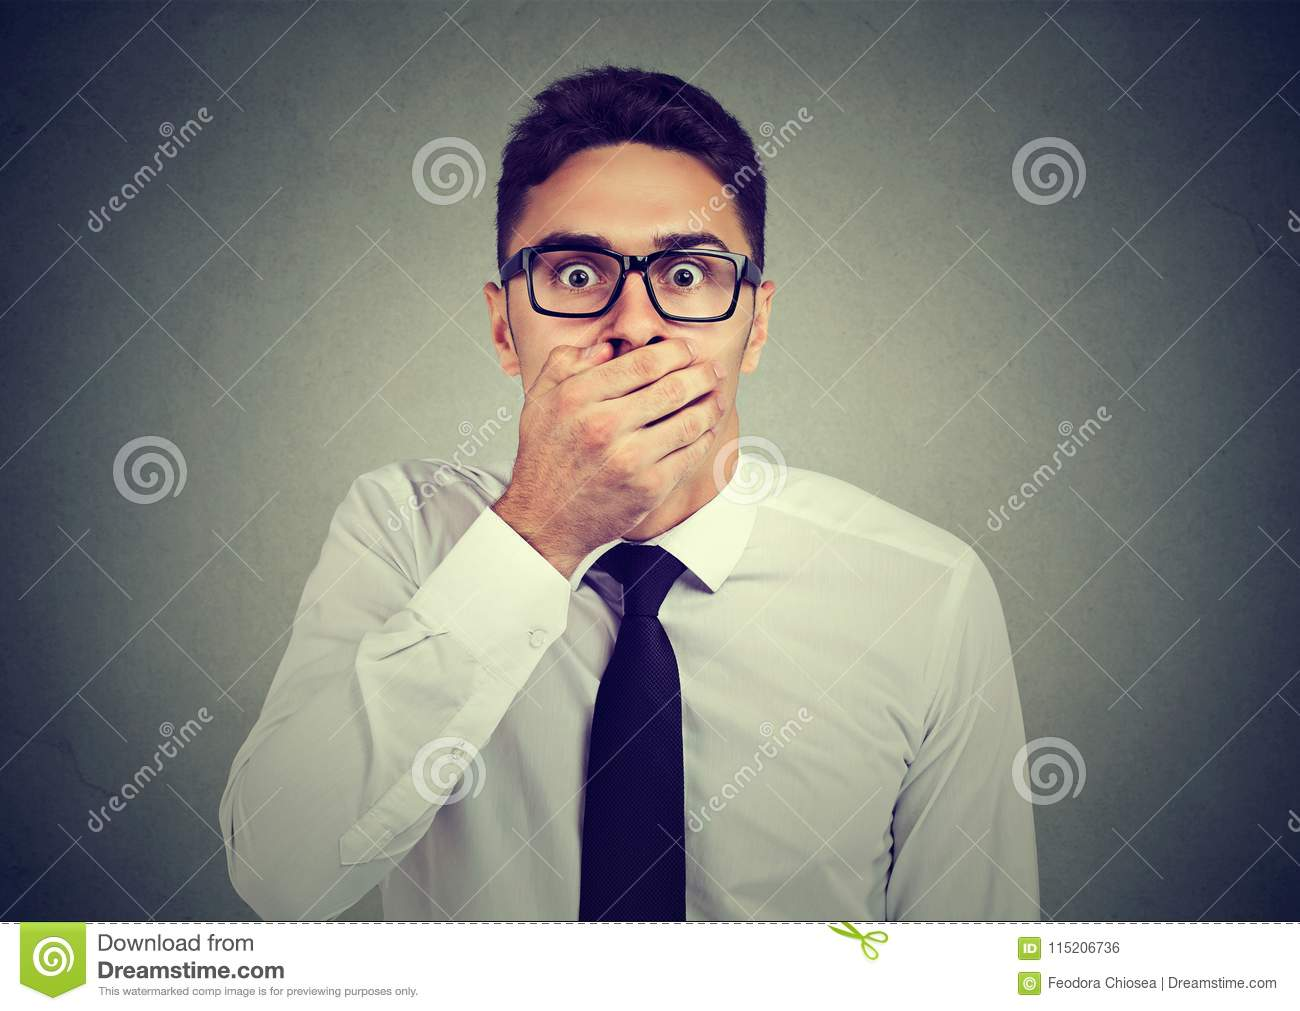 Shocked young man covering his mouth with hand